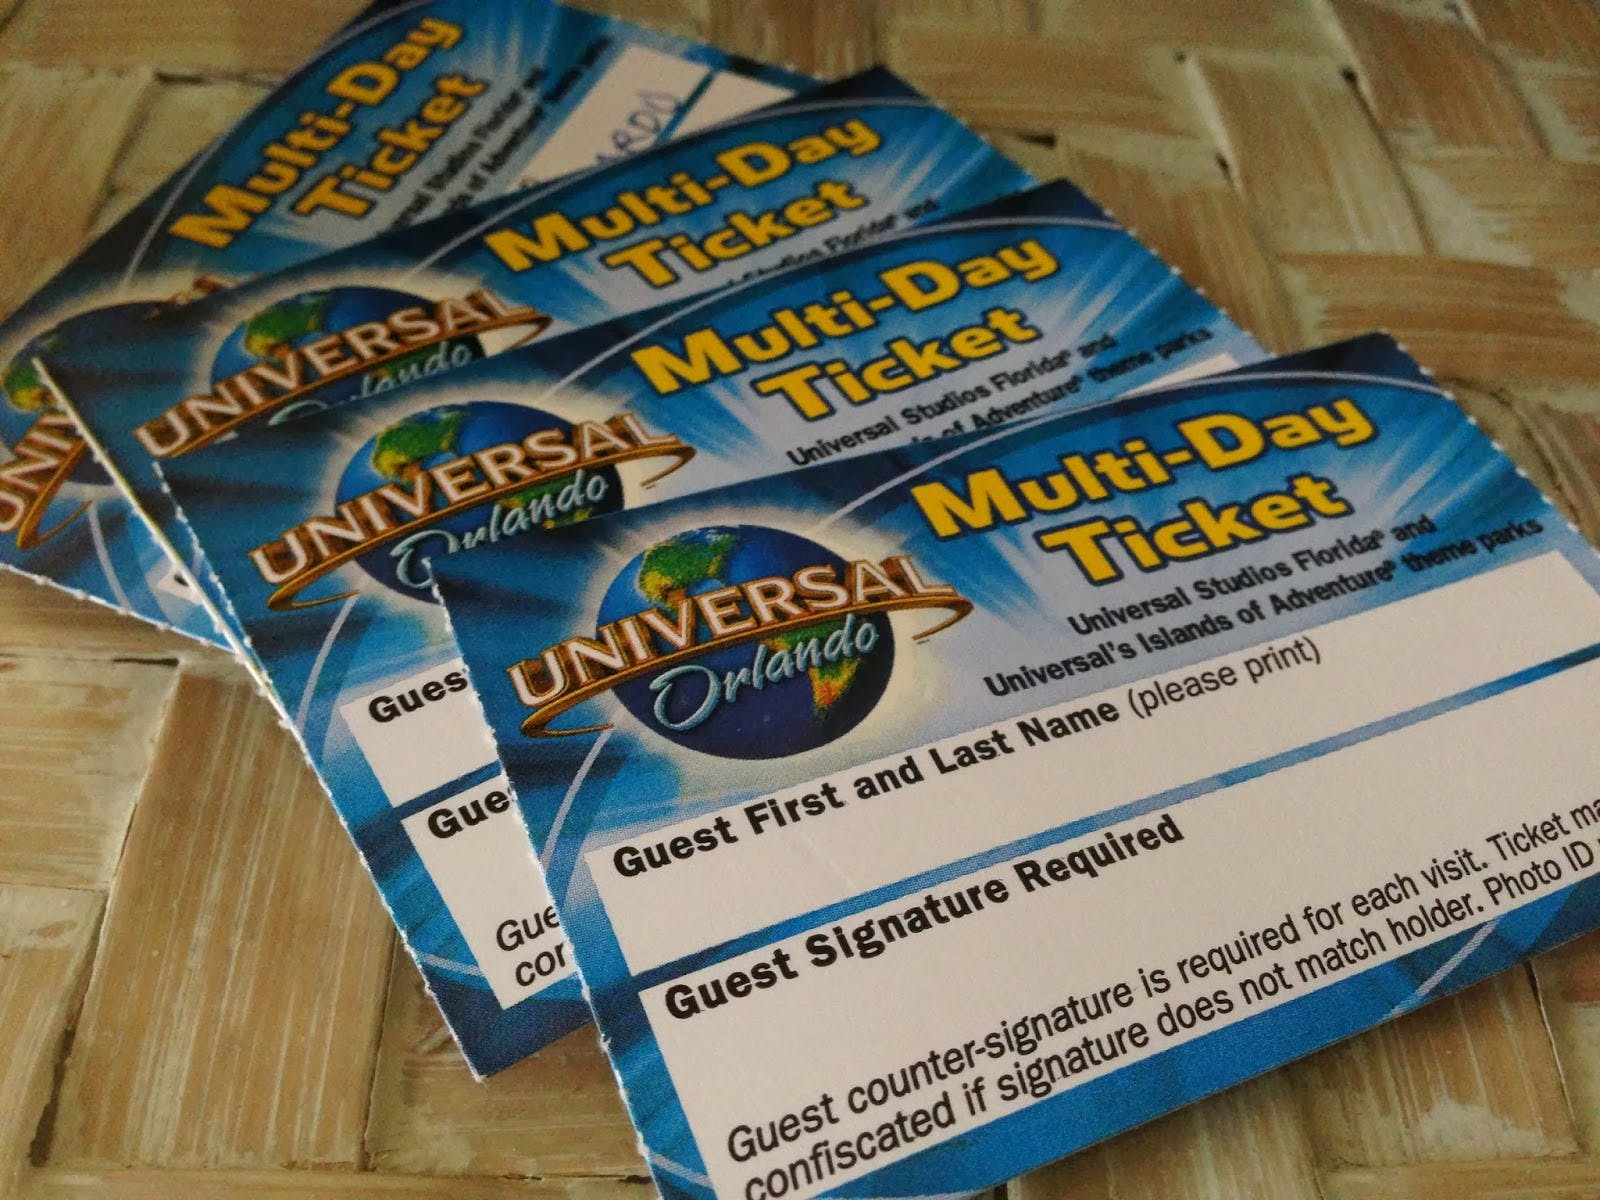 27 Universal Studios Orlando Tips Tricks That Ll Save You Time And Money The Krazy Coupon Lady